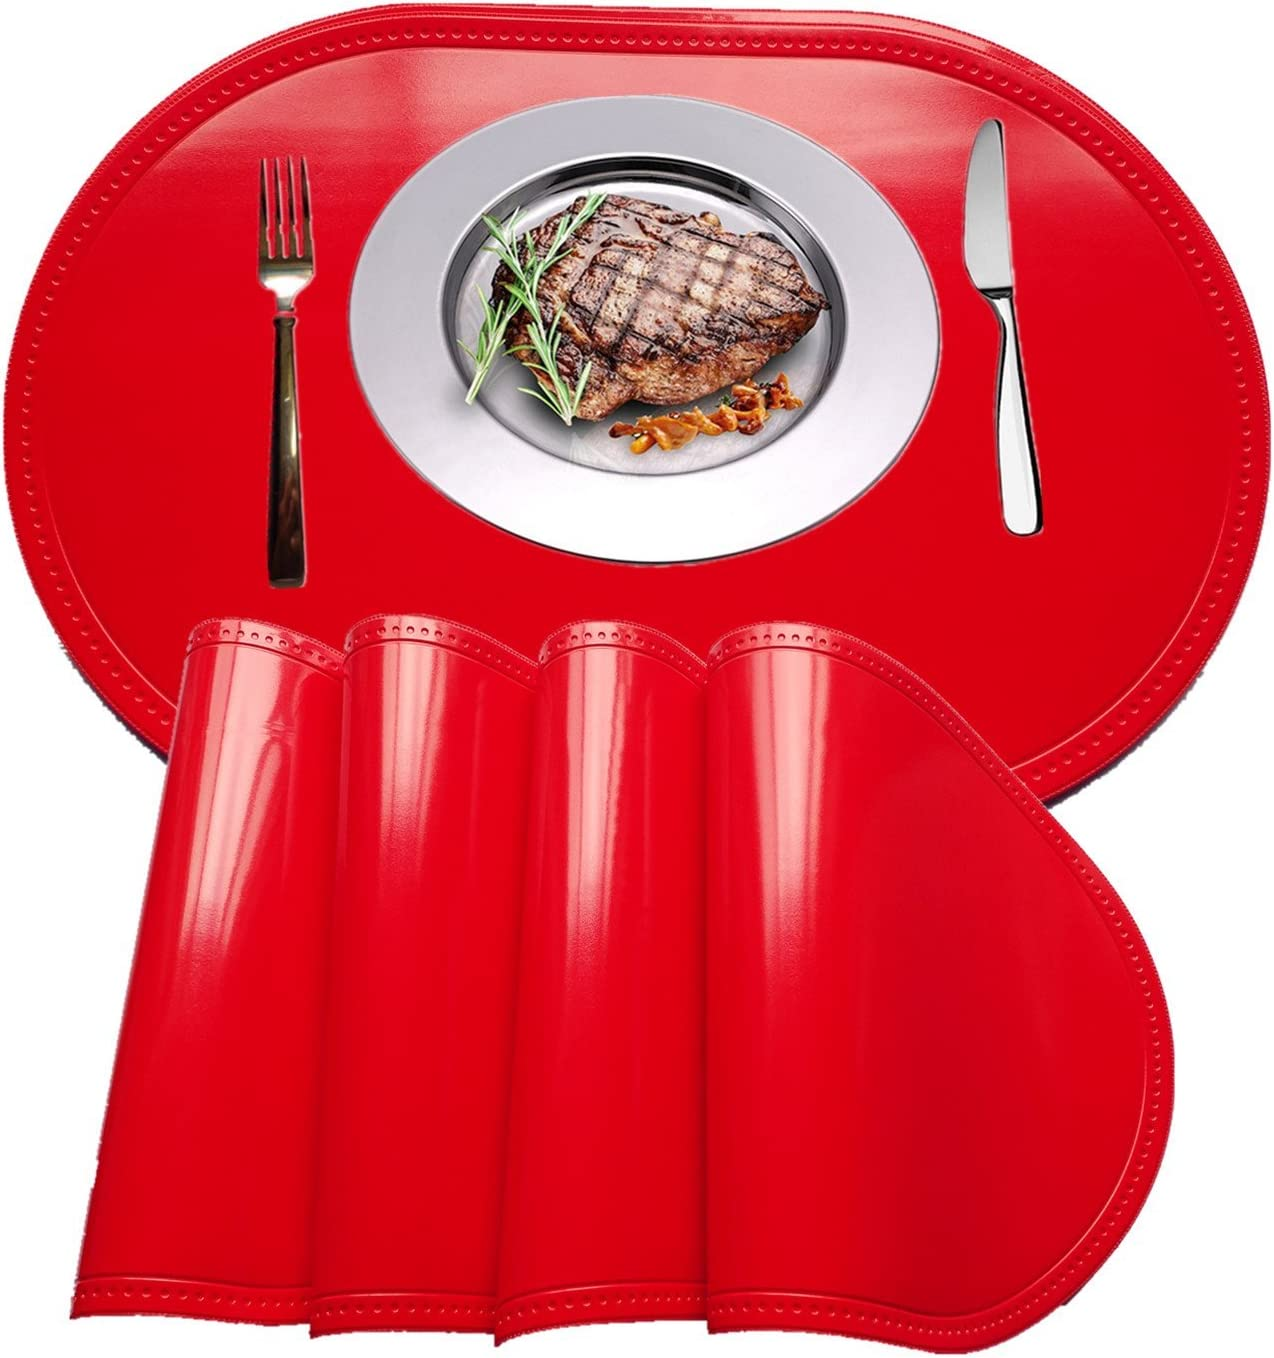 Placemat Jacksonville Mall Superior WANGCHAO Plastic molding Faux Place PVC Ov Leather mats